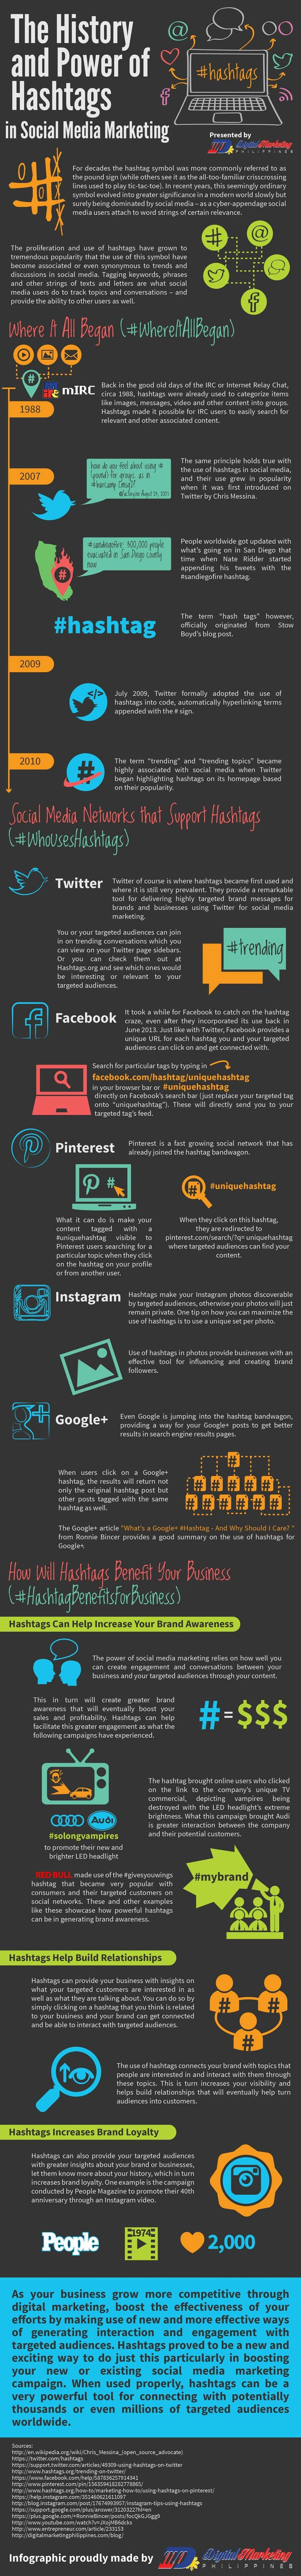 Hashtags The Power and History of Hashtags The proliferation and use of hashtags have grown to tremendous popularity in social media